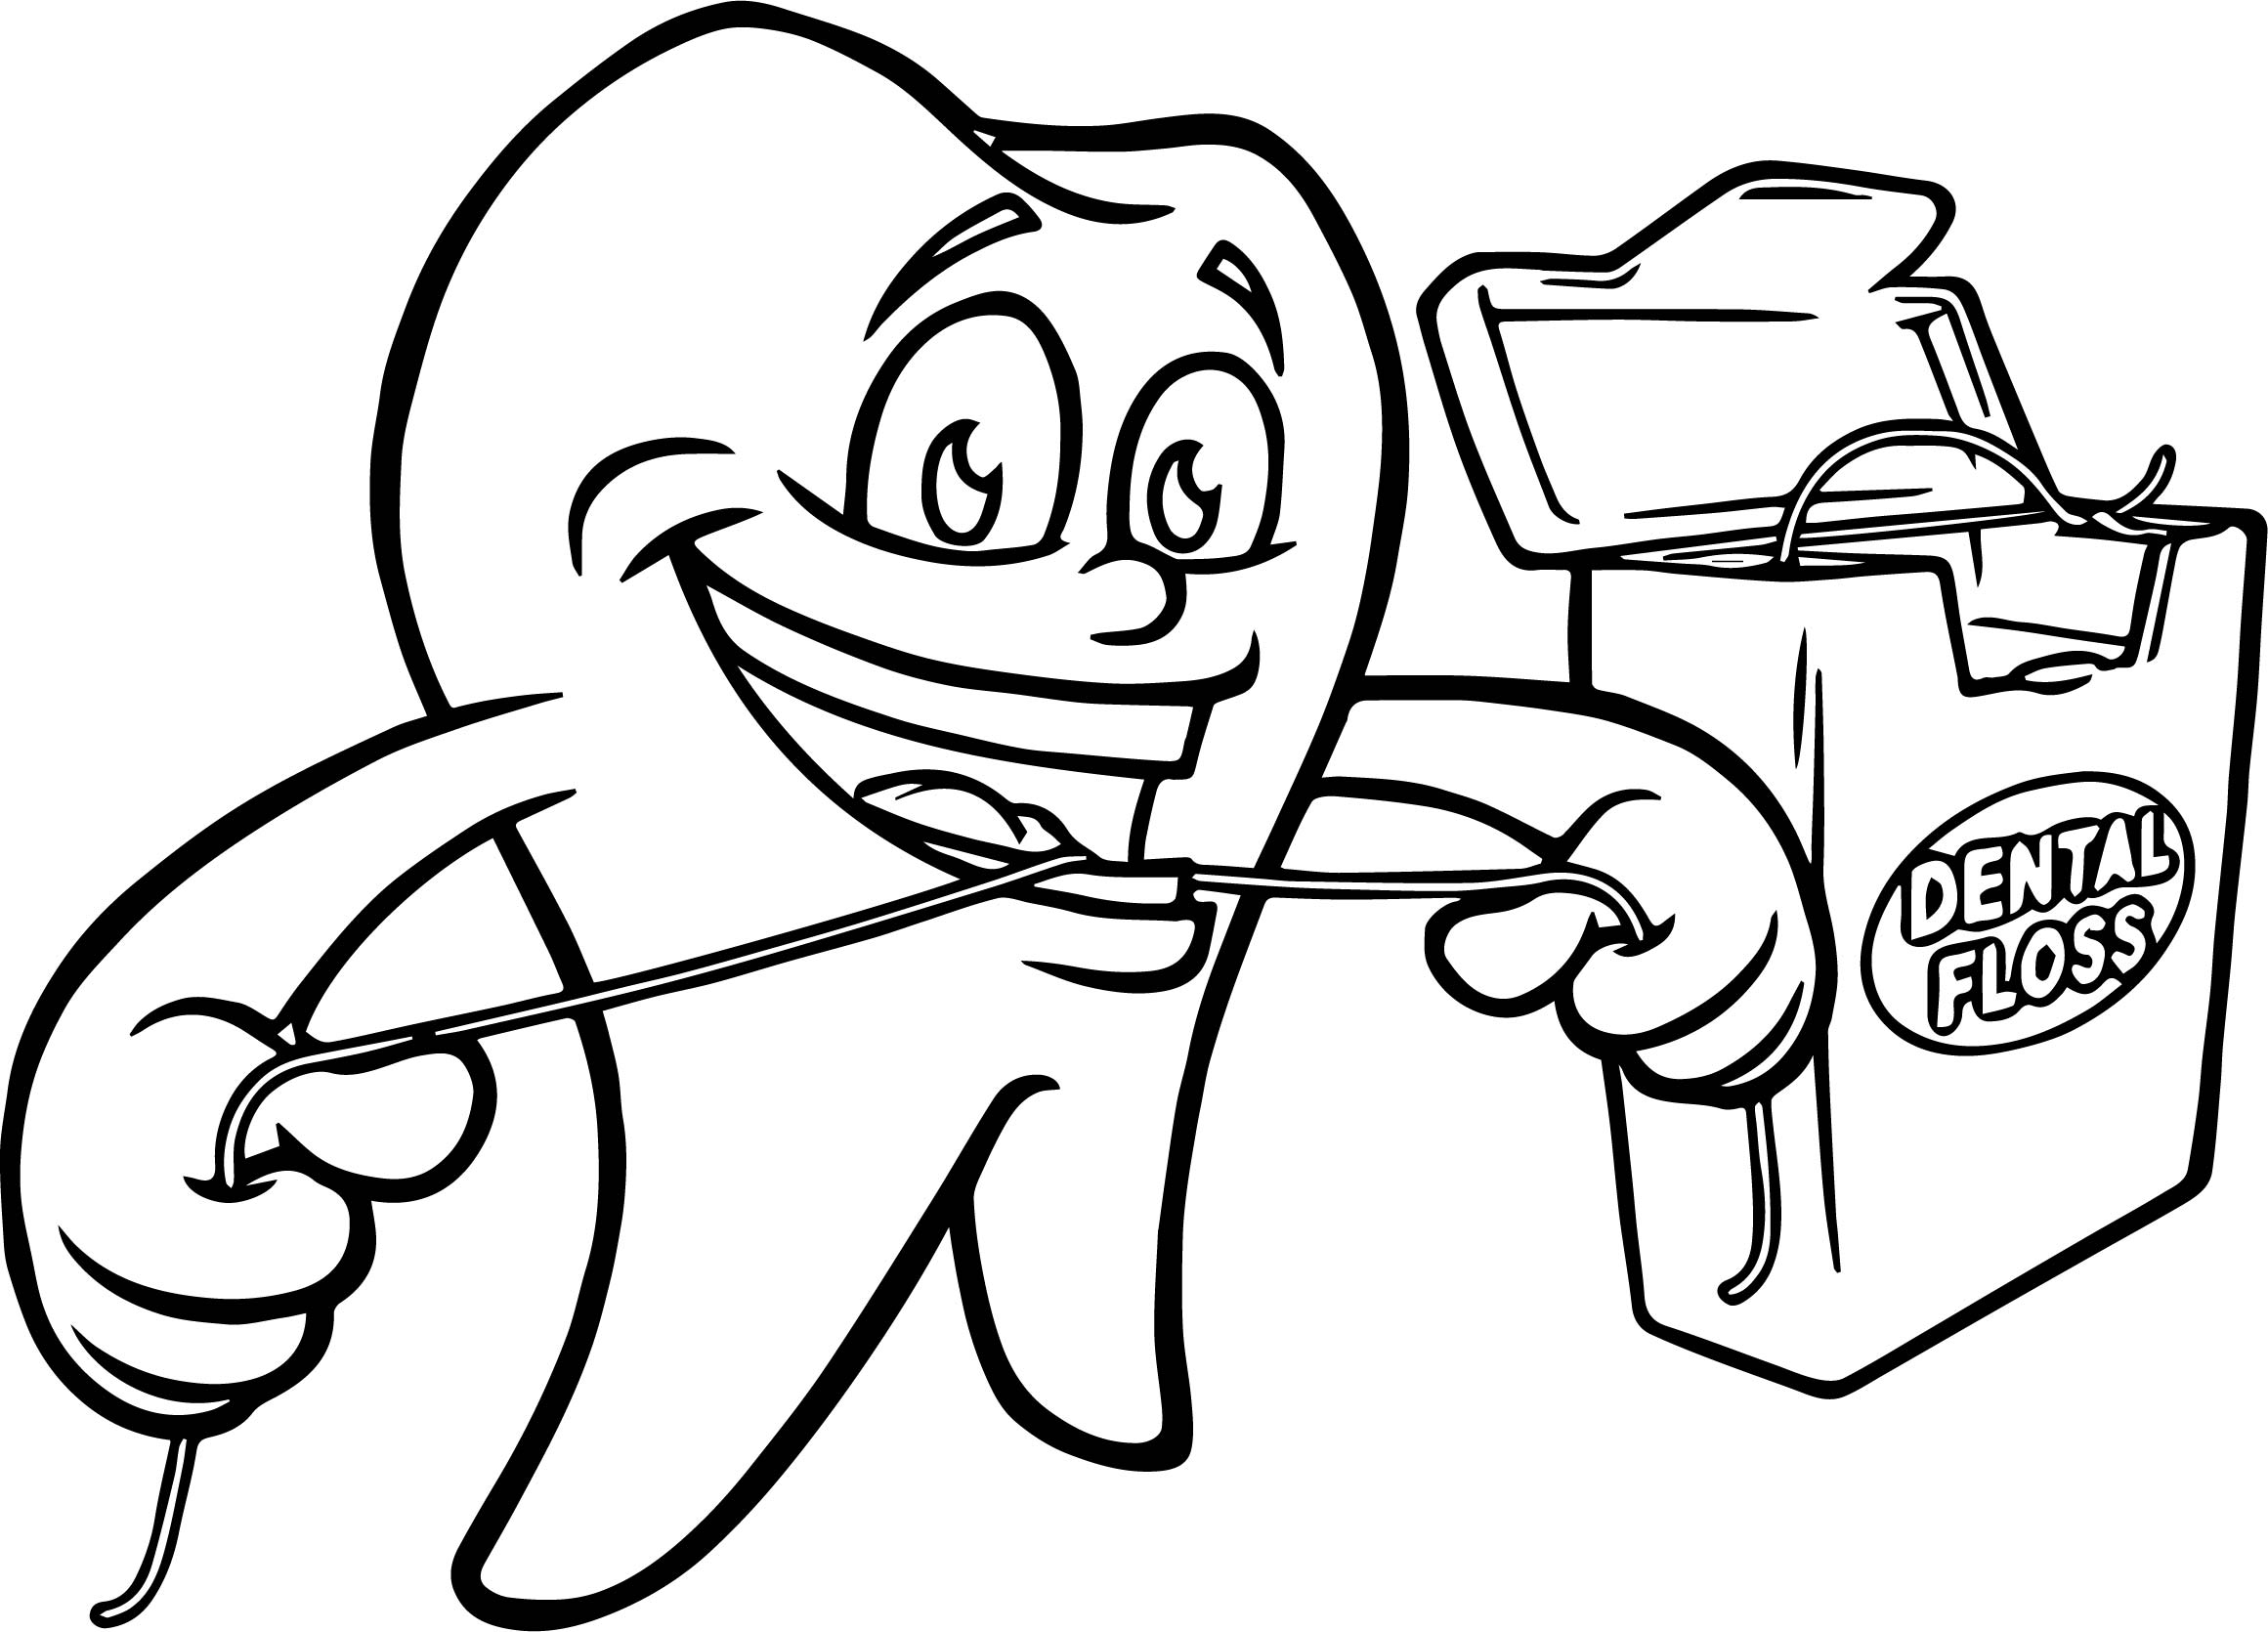 Dental Floss Teeth Coloring Page